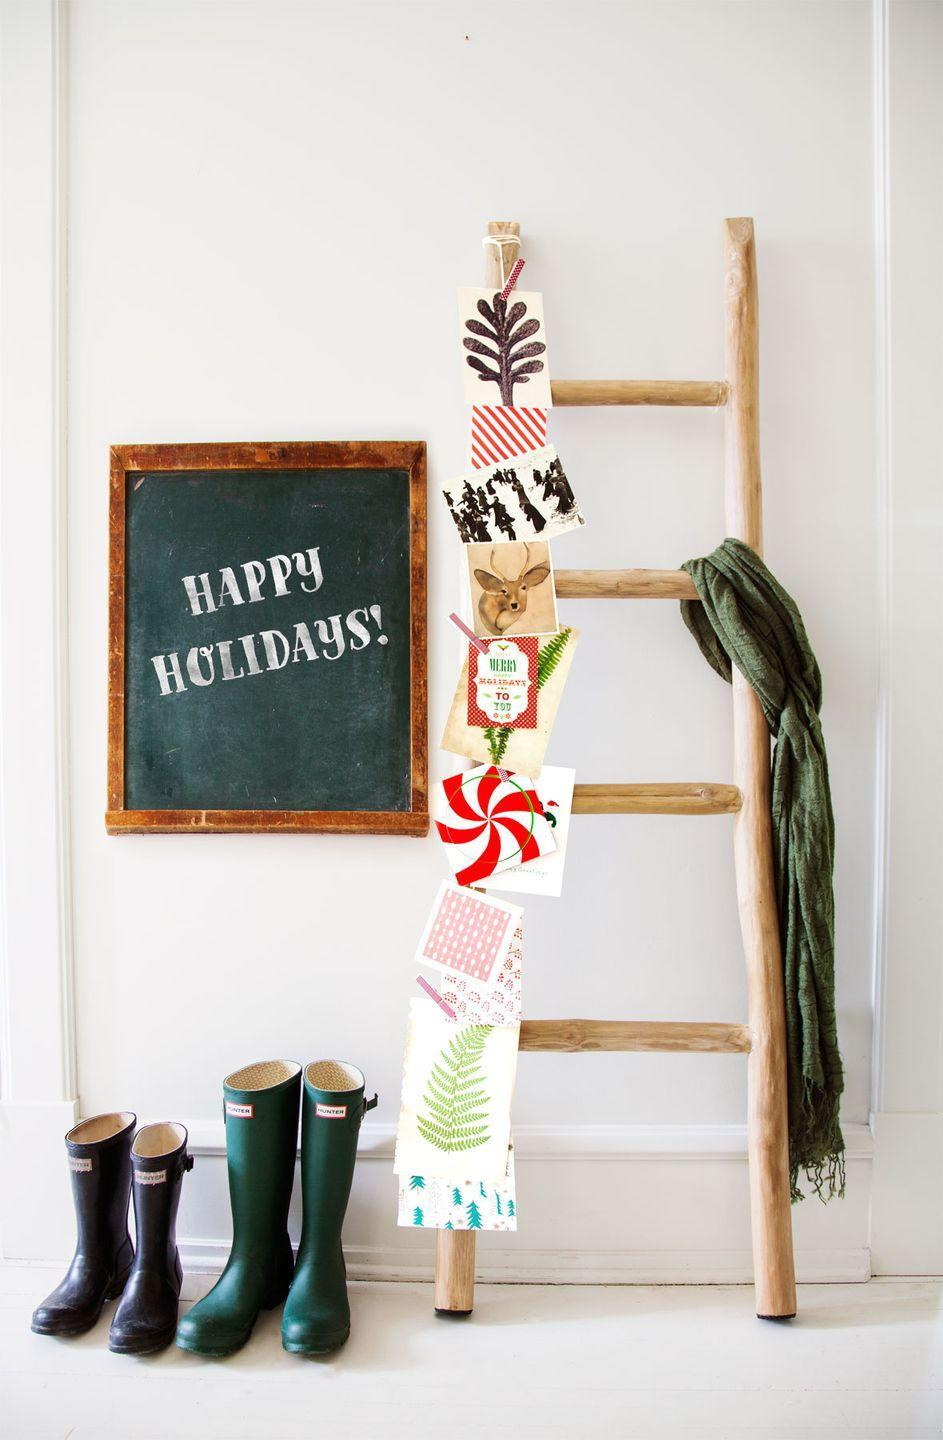 "<p>Put season's greetings on full display. A rustic ladder can also hold cozy throws and blankets for chilly nights. </p><p>See more at <a href=""http://www.countryliving.com/home-design/decorating-ideas/advice/g1247/holiday-decorating-1208/"" rel=""nofollow noopener"" target=""_blank"" data-ylk=""slk:Country Living"" class=""link rapid-noclick-resp"">Country Living</a>. </p>"